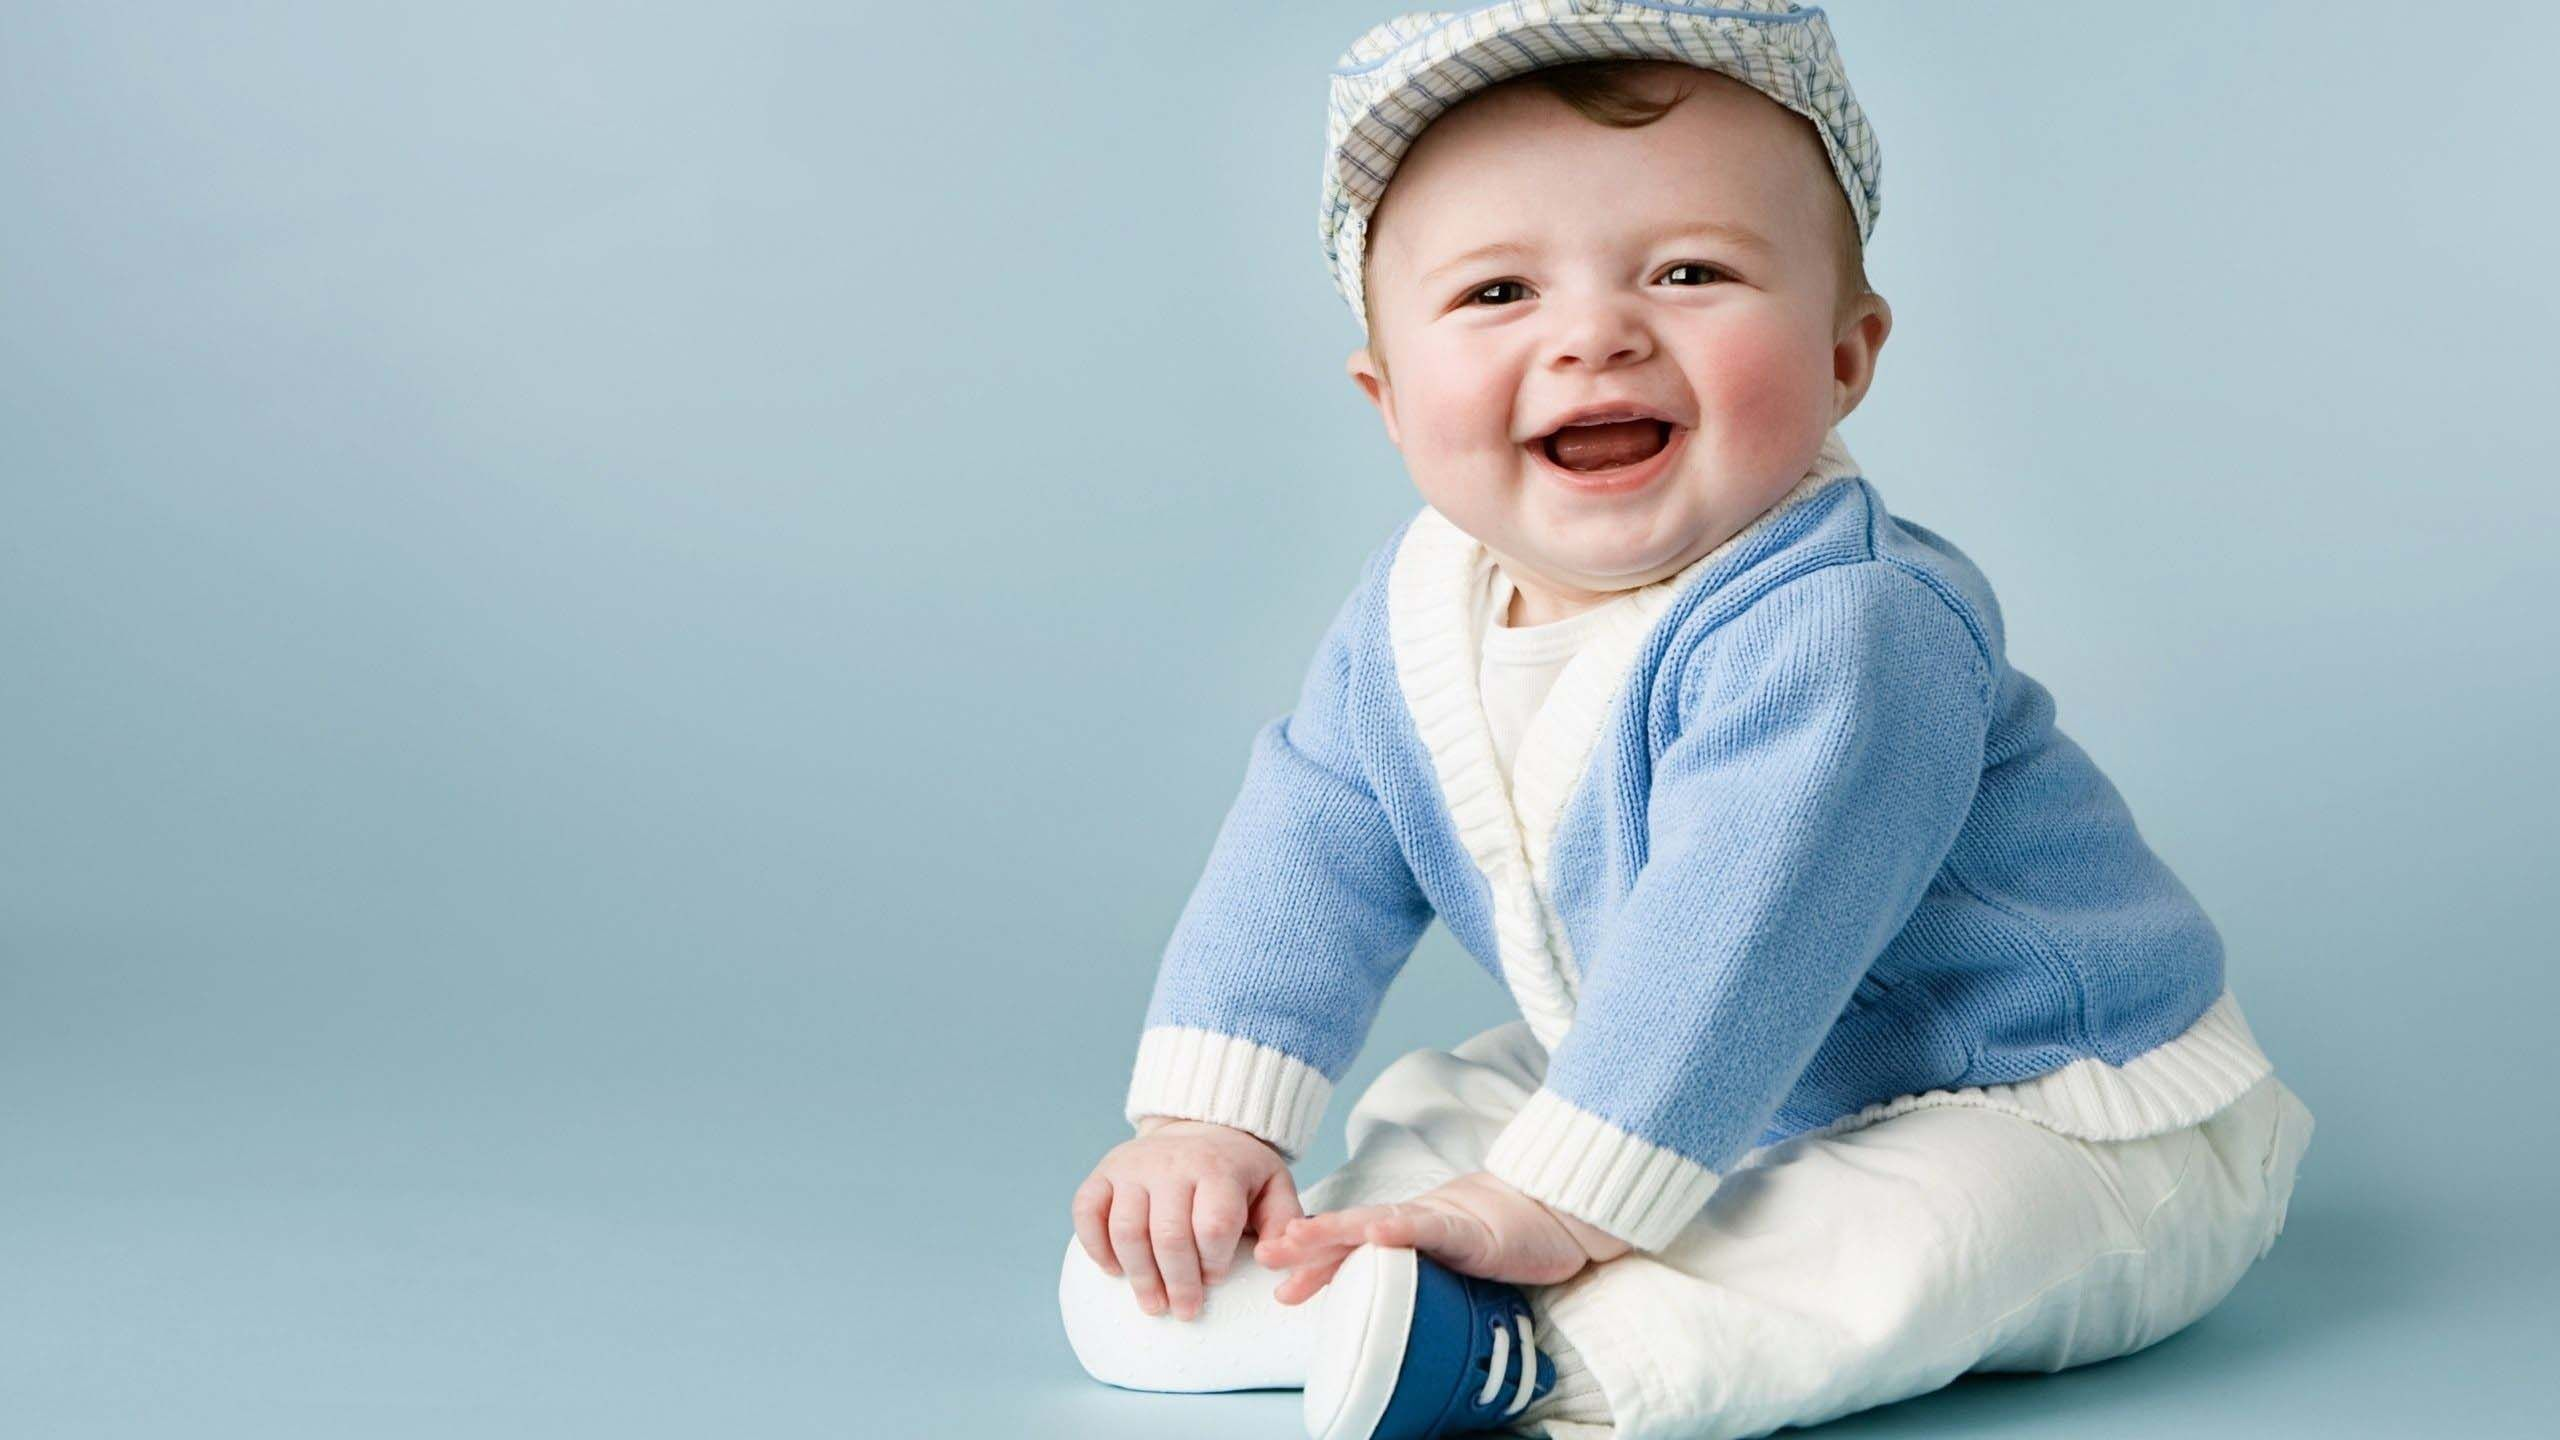 cute babies laughing videos most funny babies videos new 1920×1080